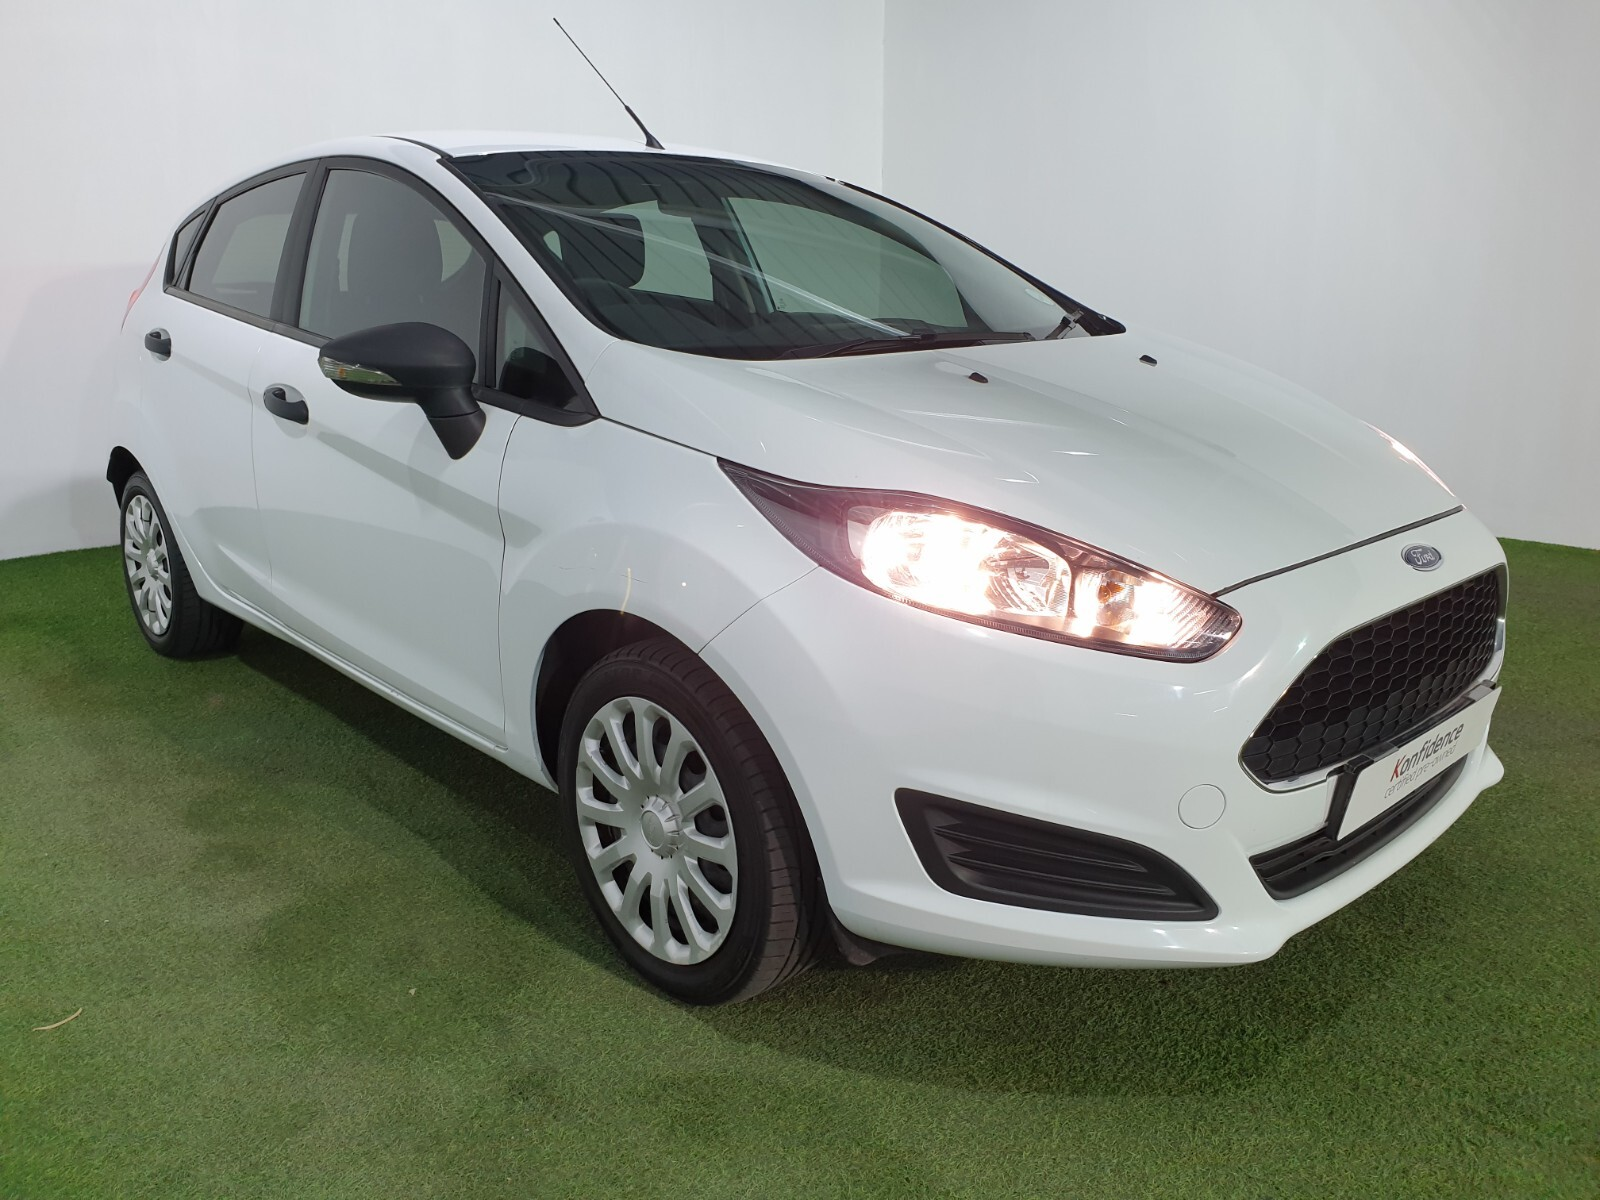 FORD 1.4 AMBIENTE 5 Dr Johannesburg 0327079